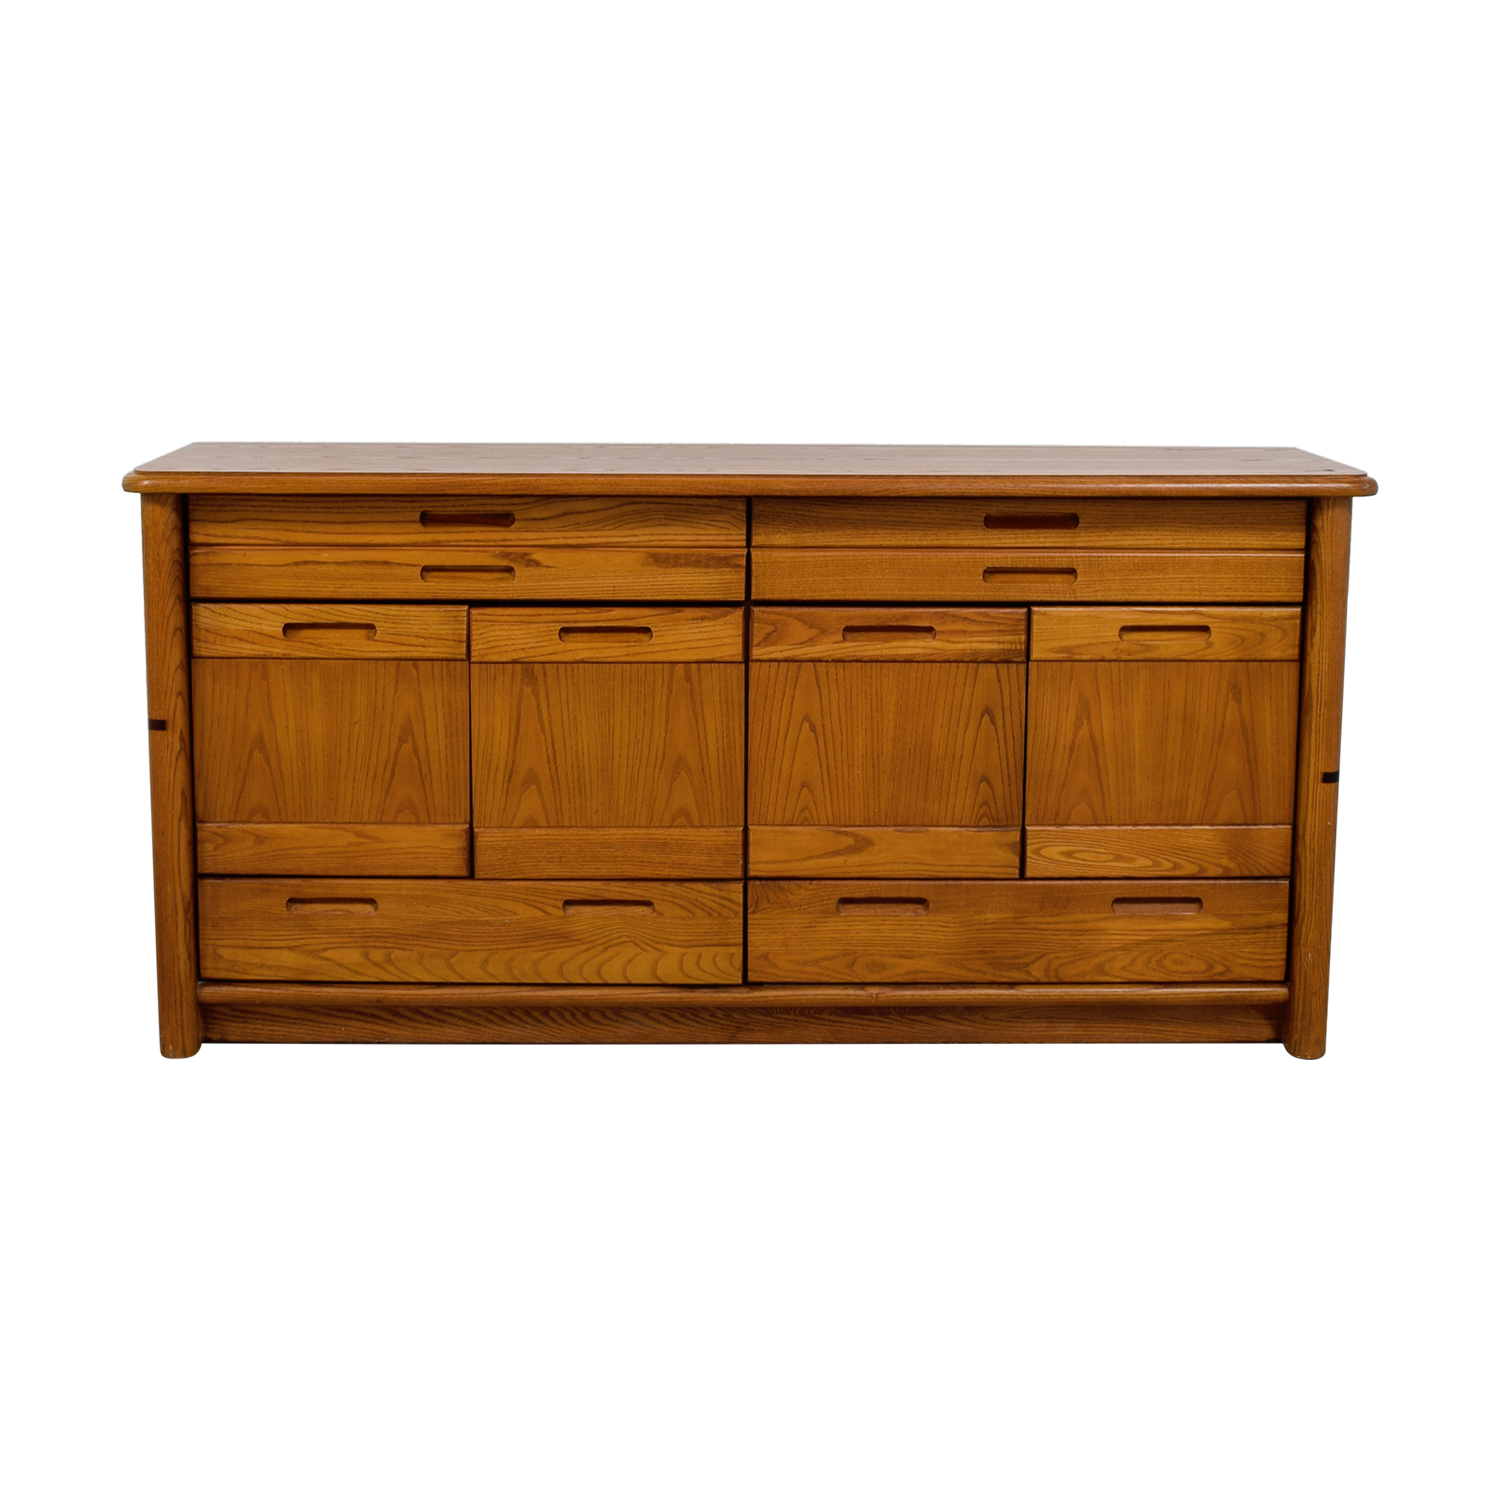 Thomasville Thomasville Wood Buffet Cabinet coupon